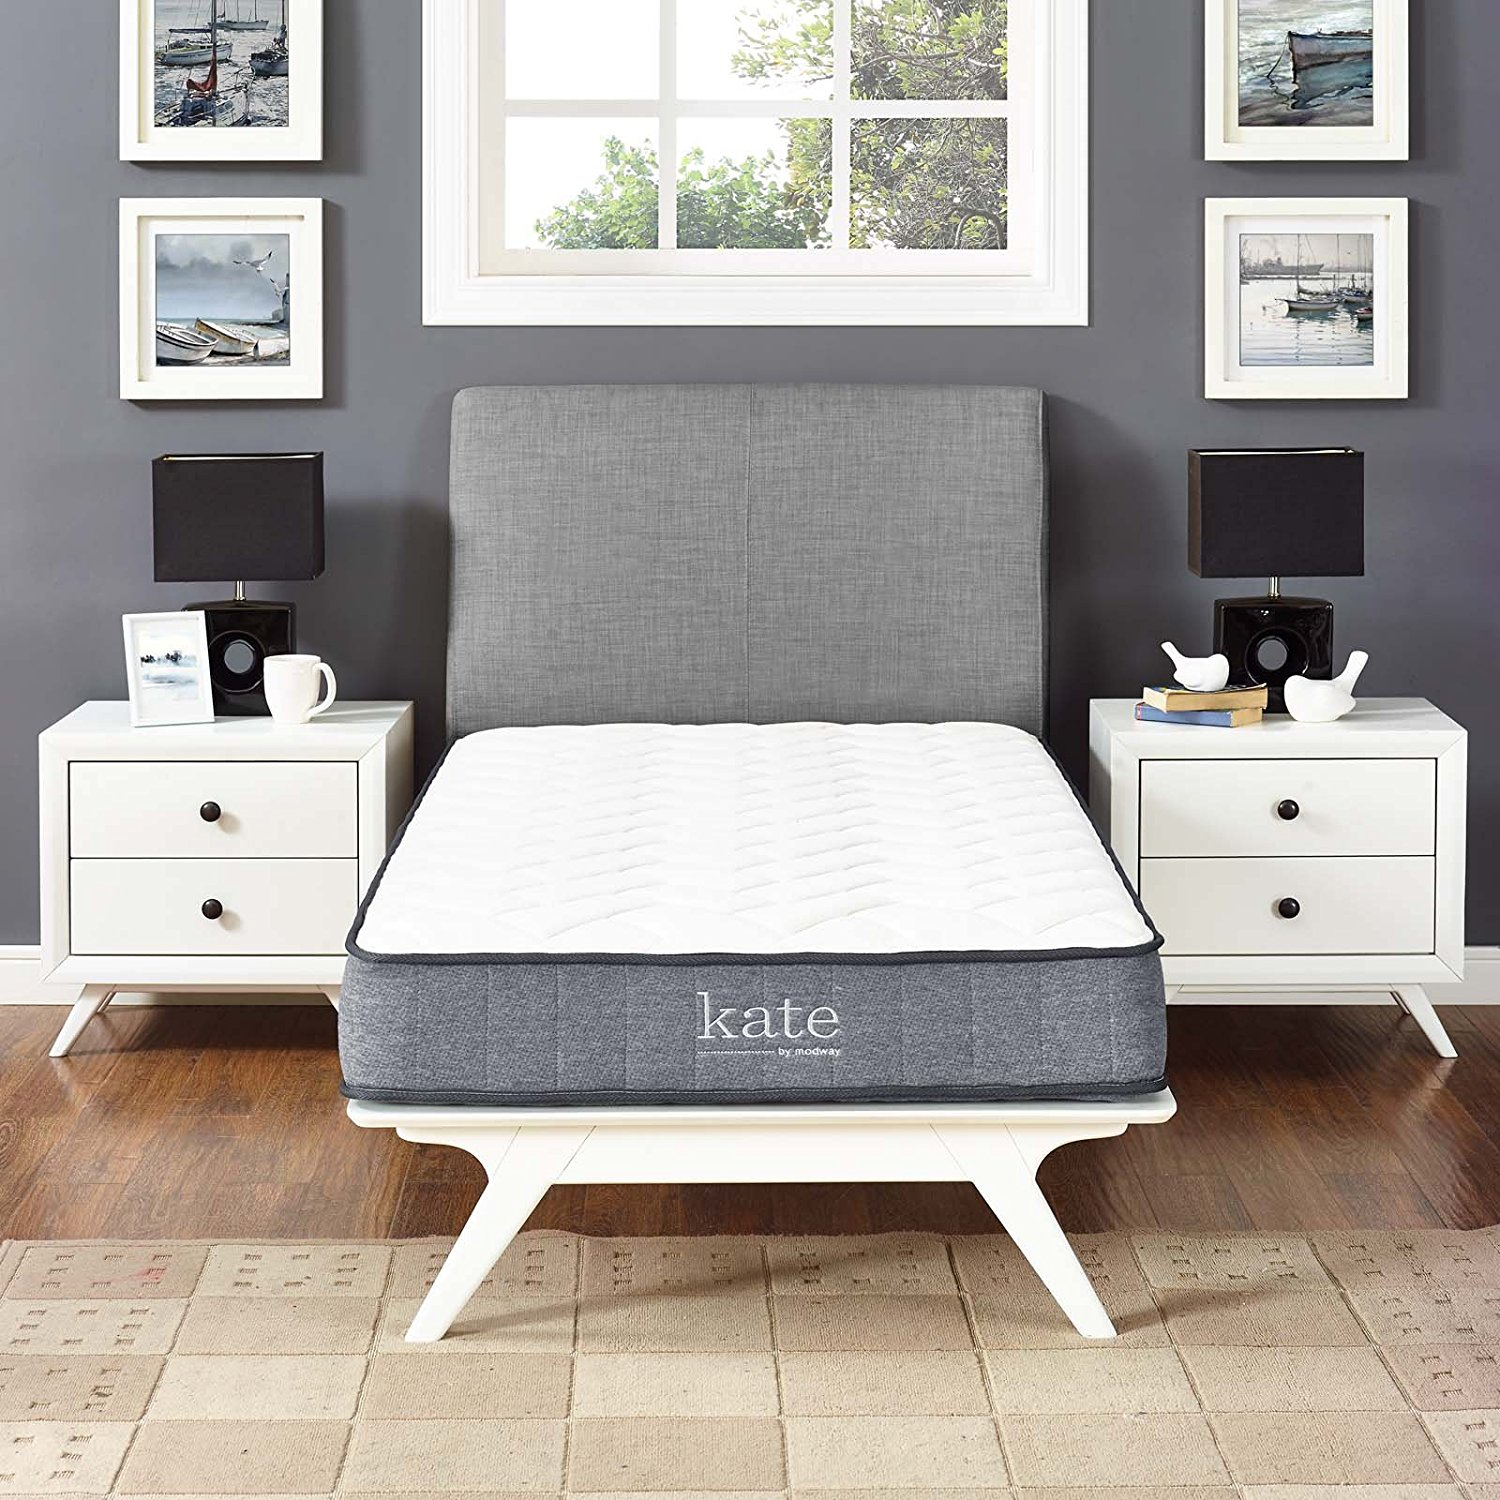 "Modway Kate 8"" Twin Innerspring Mattress - Firm Mattress For Child or Guest Room - Perfect For Bunk Bed - Loft Bed - 10-Year Warranty"